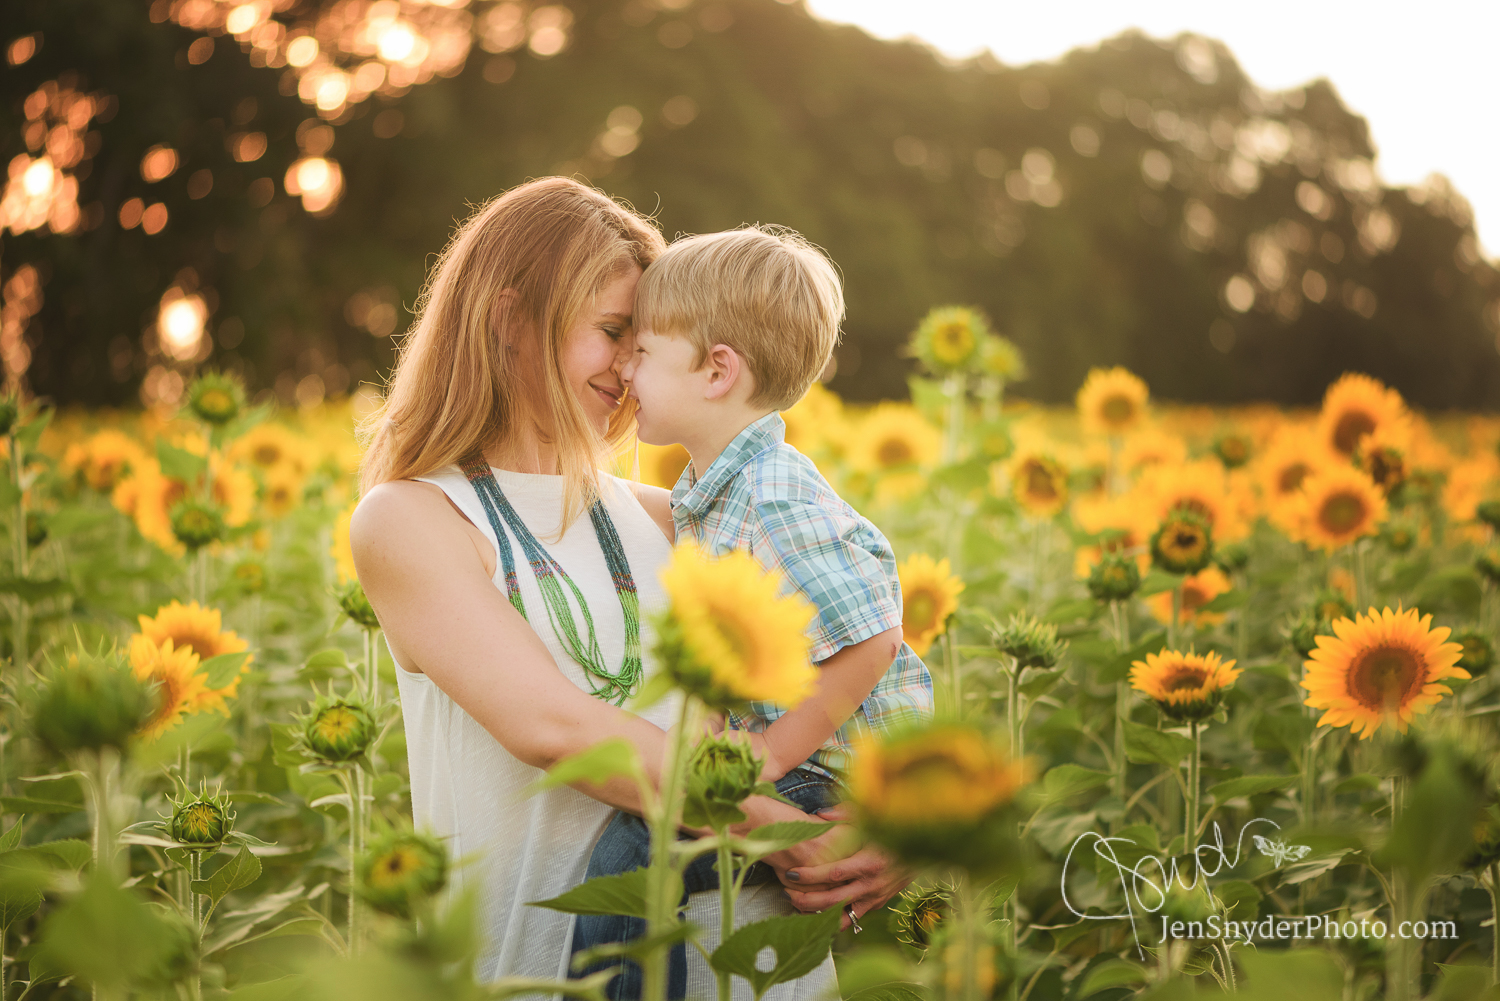 sunflower family portraits in Jarrettsville MD by harford county professional photographer Jen Snyder http://www.jensnyderphoto.com